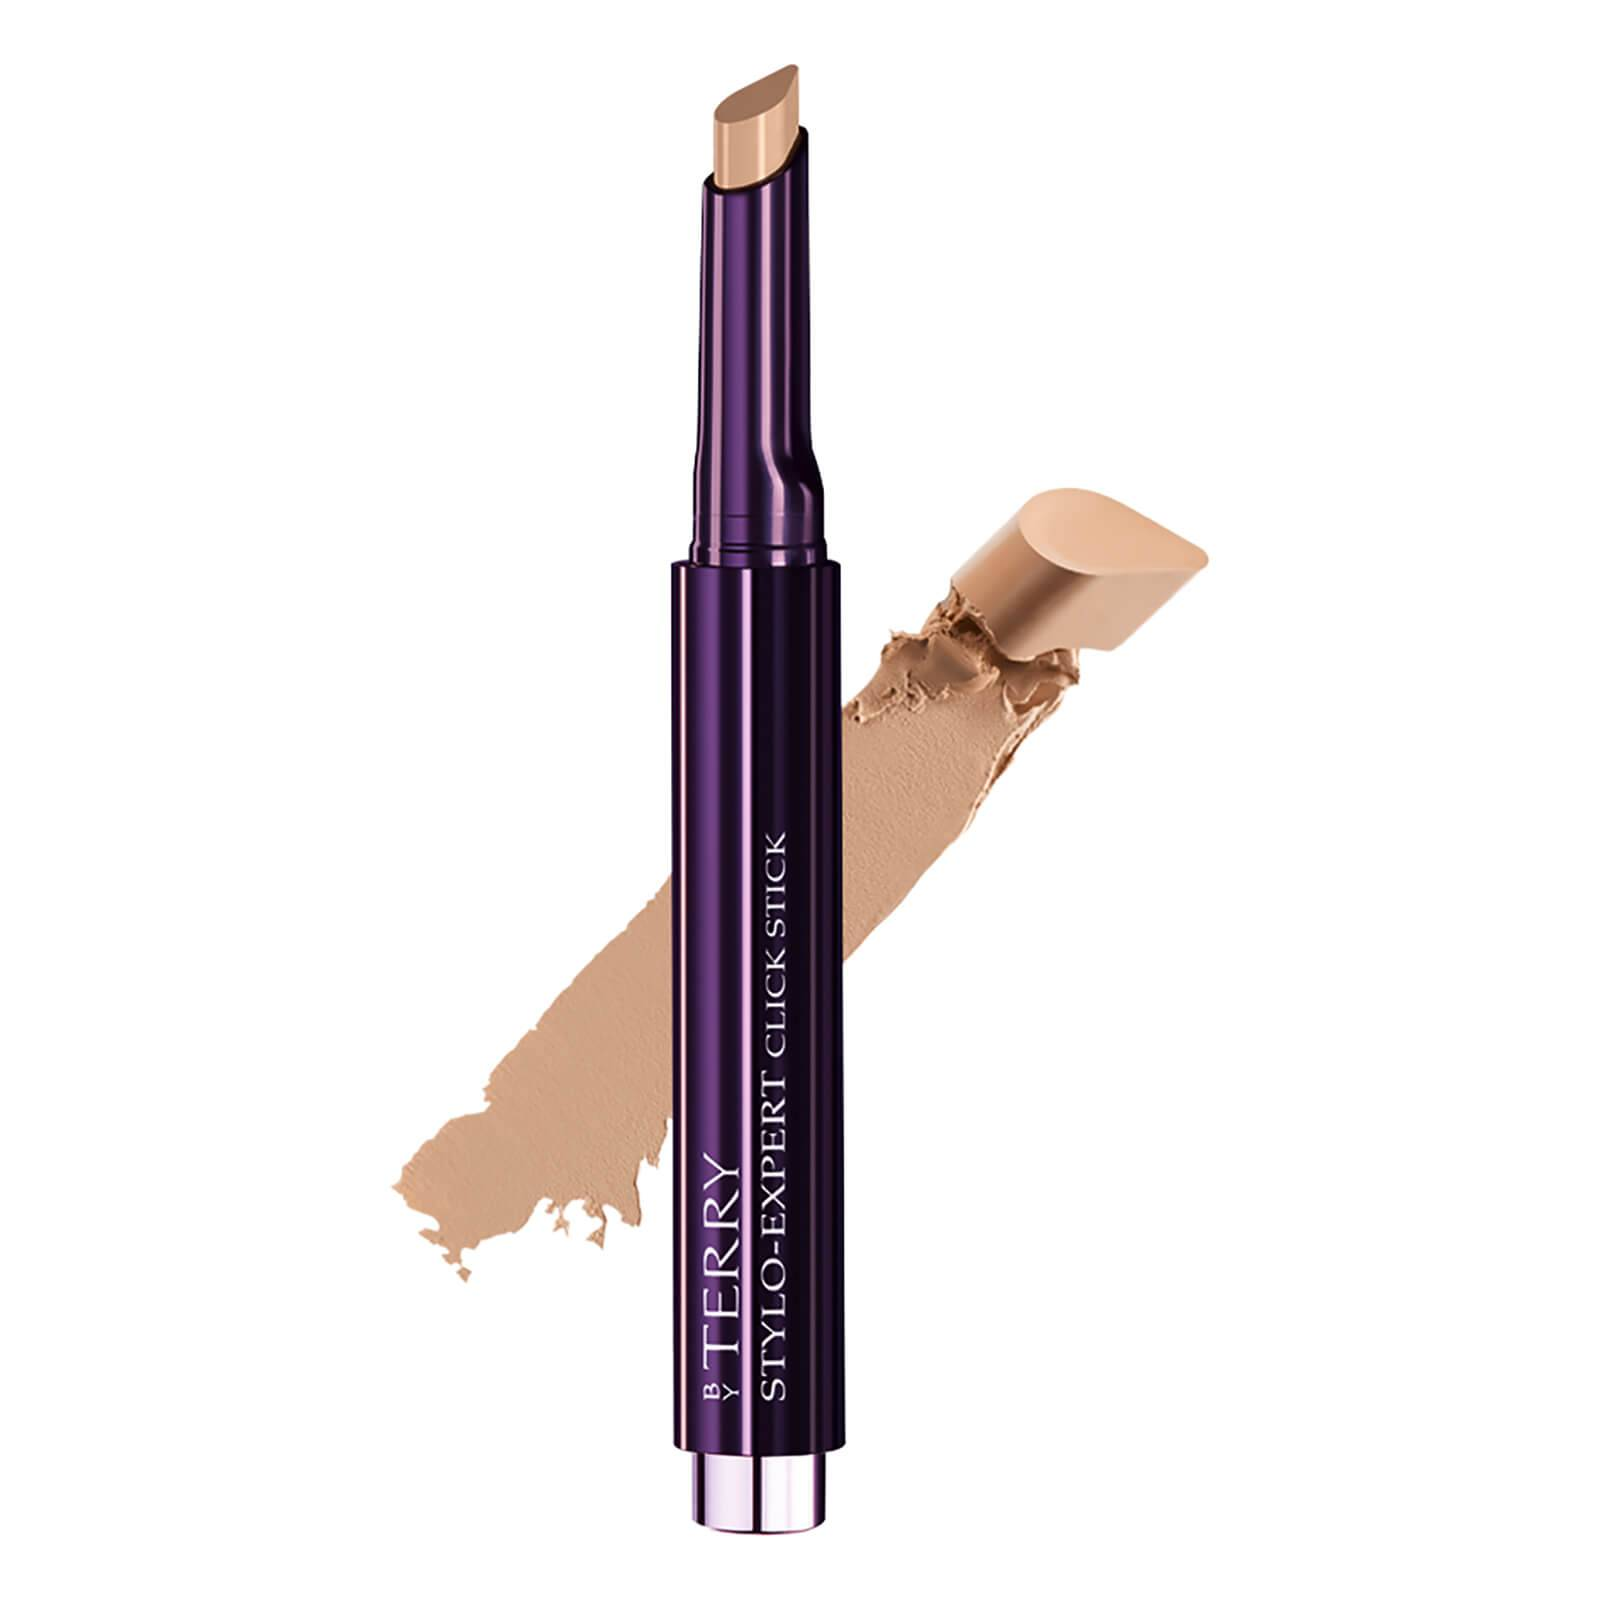 By Terry Stylo-Expert Click Stick Concealer 1g (Various Shades) - No.5 Peach Beige